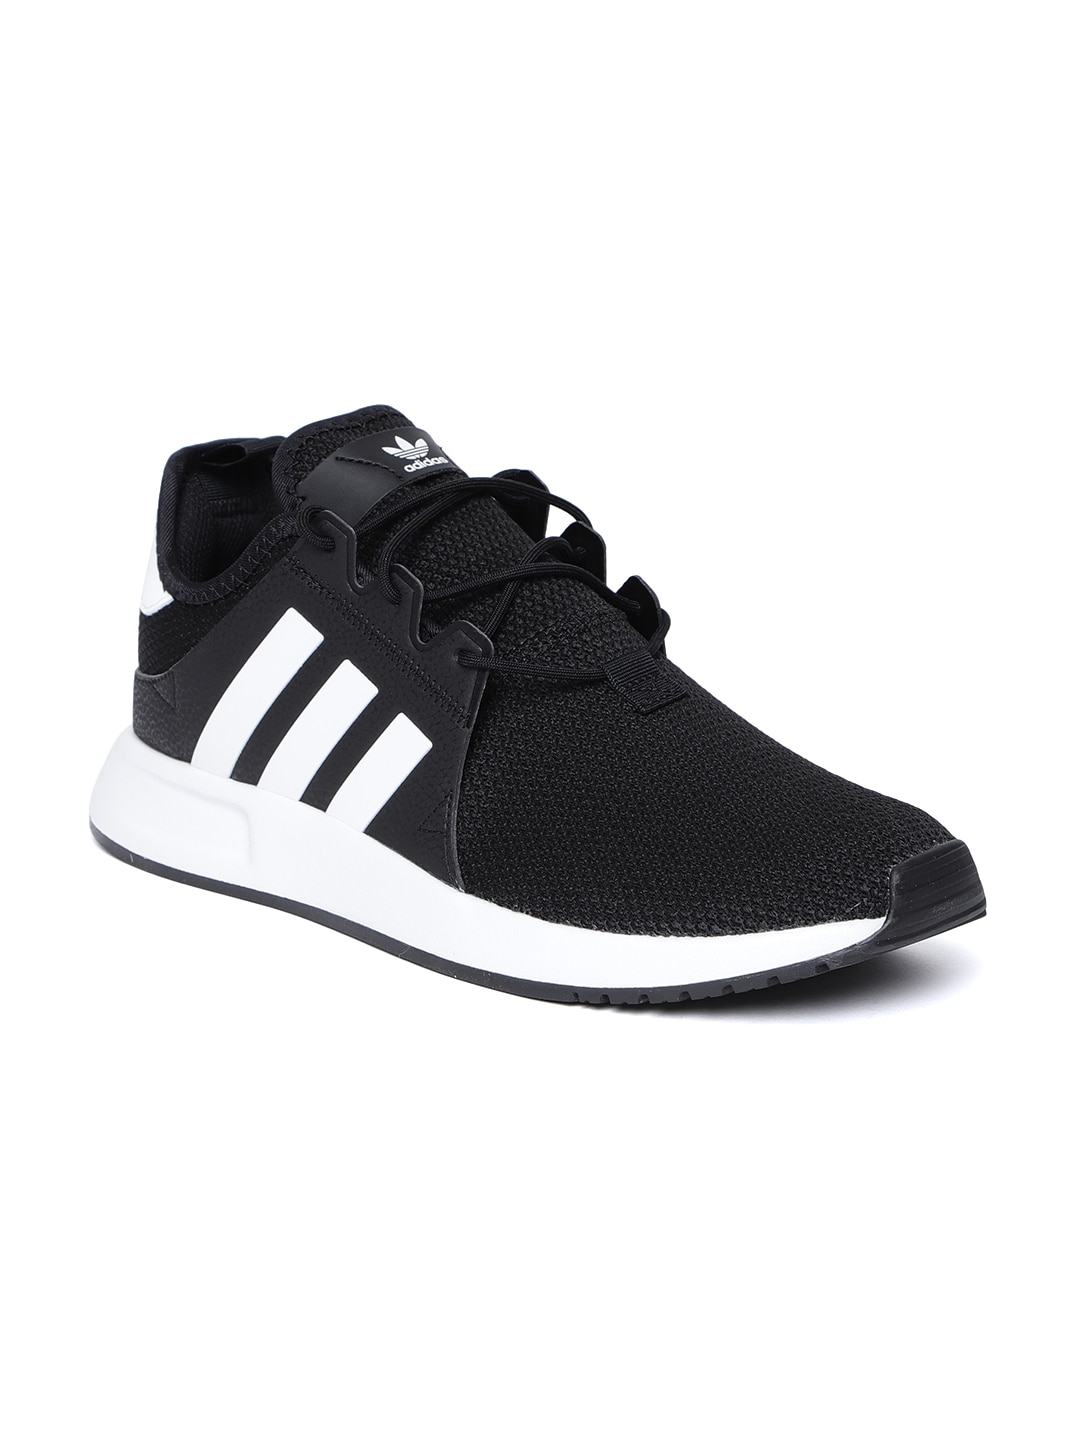 buy popular 7c826 a970c Adidas Shoes - Buy Adidas Shoes for Men   Women Online - Myntra